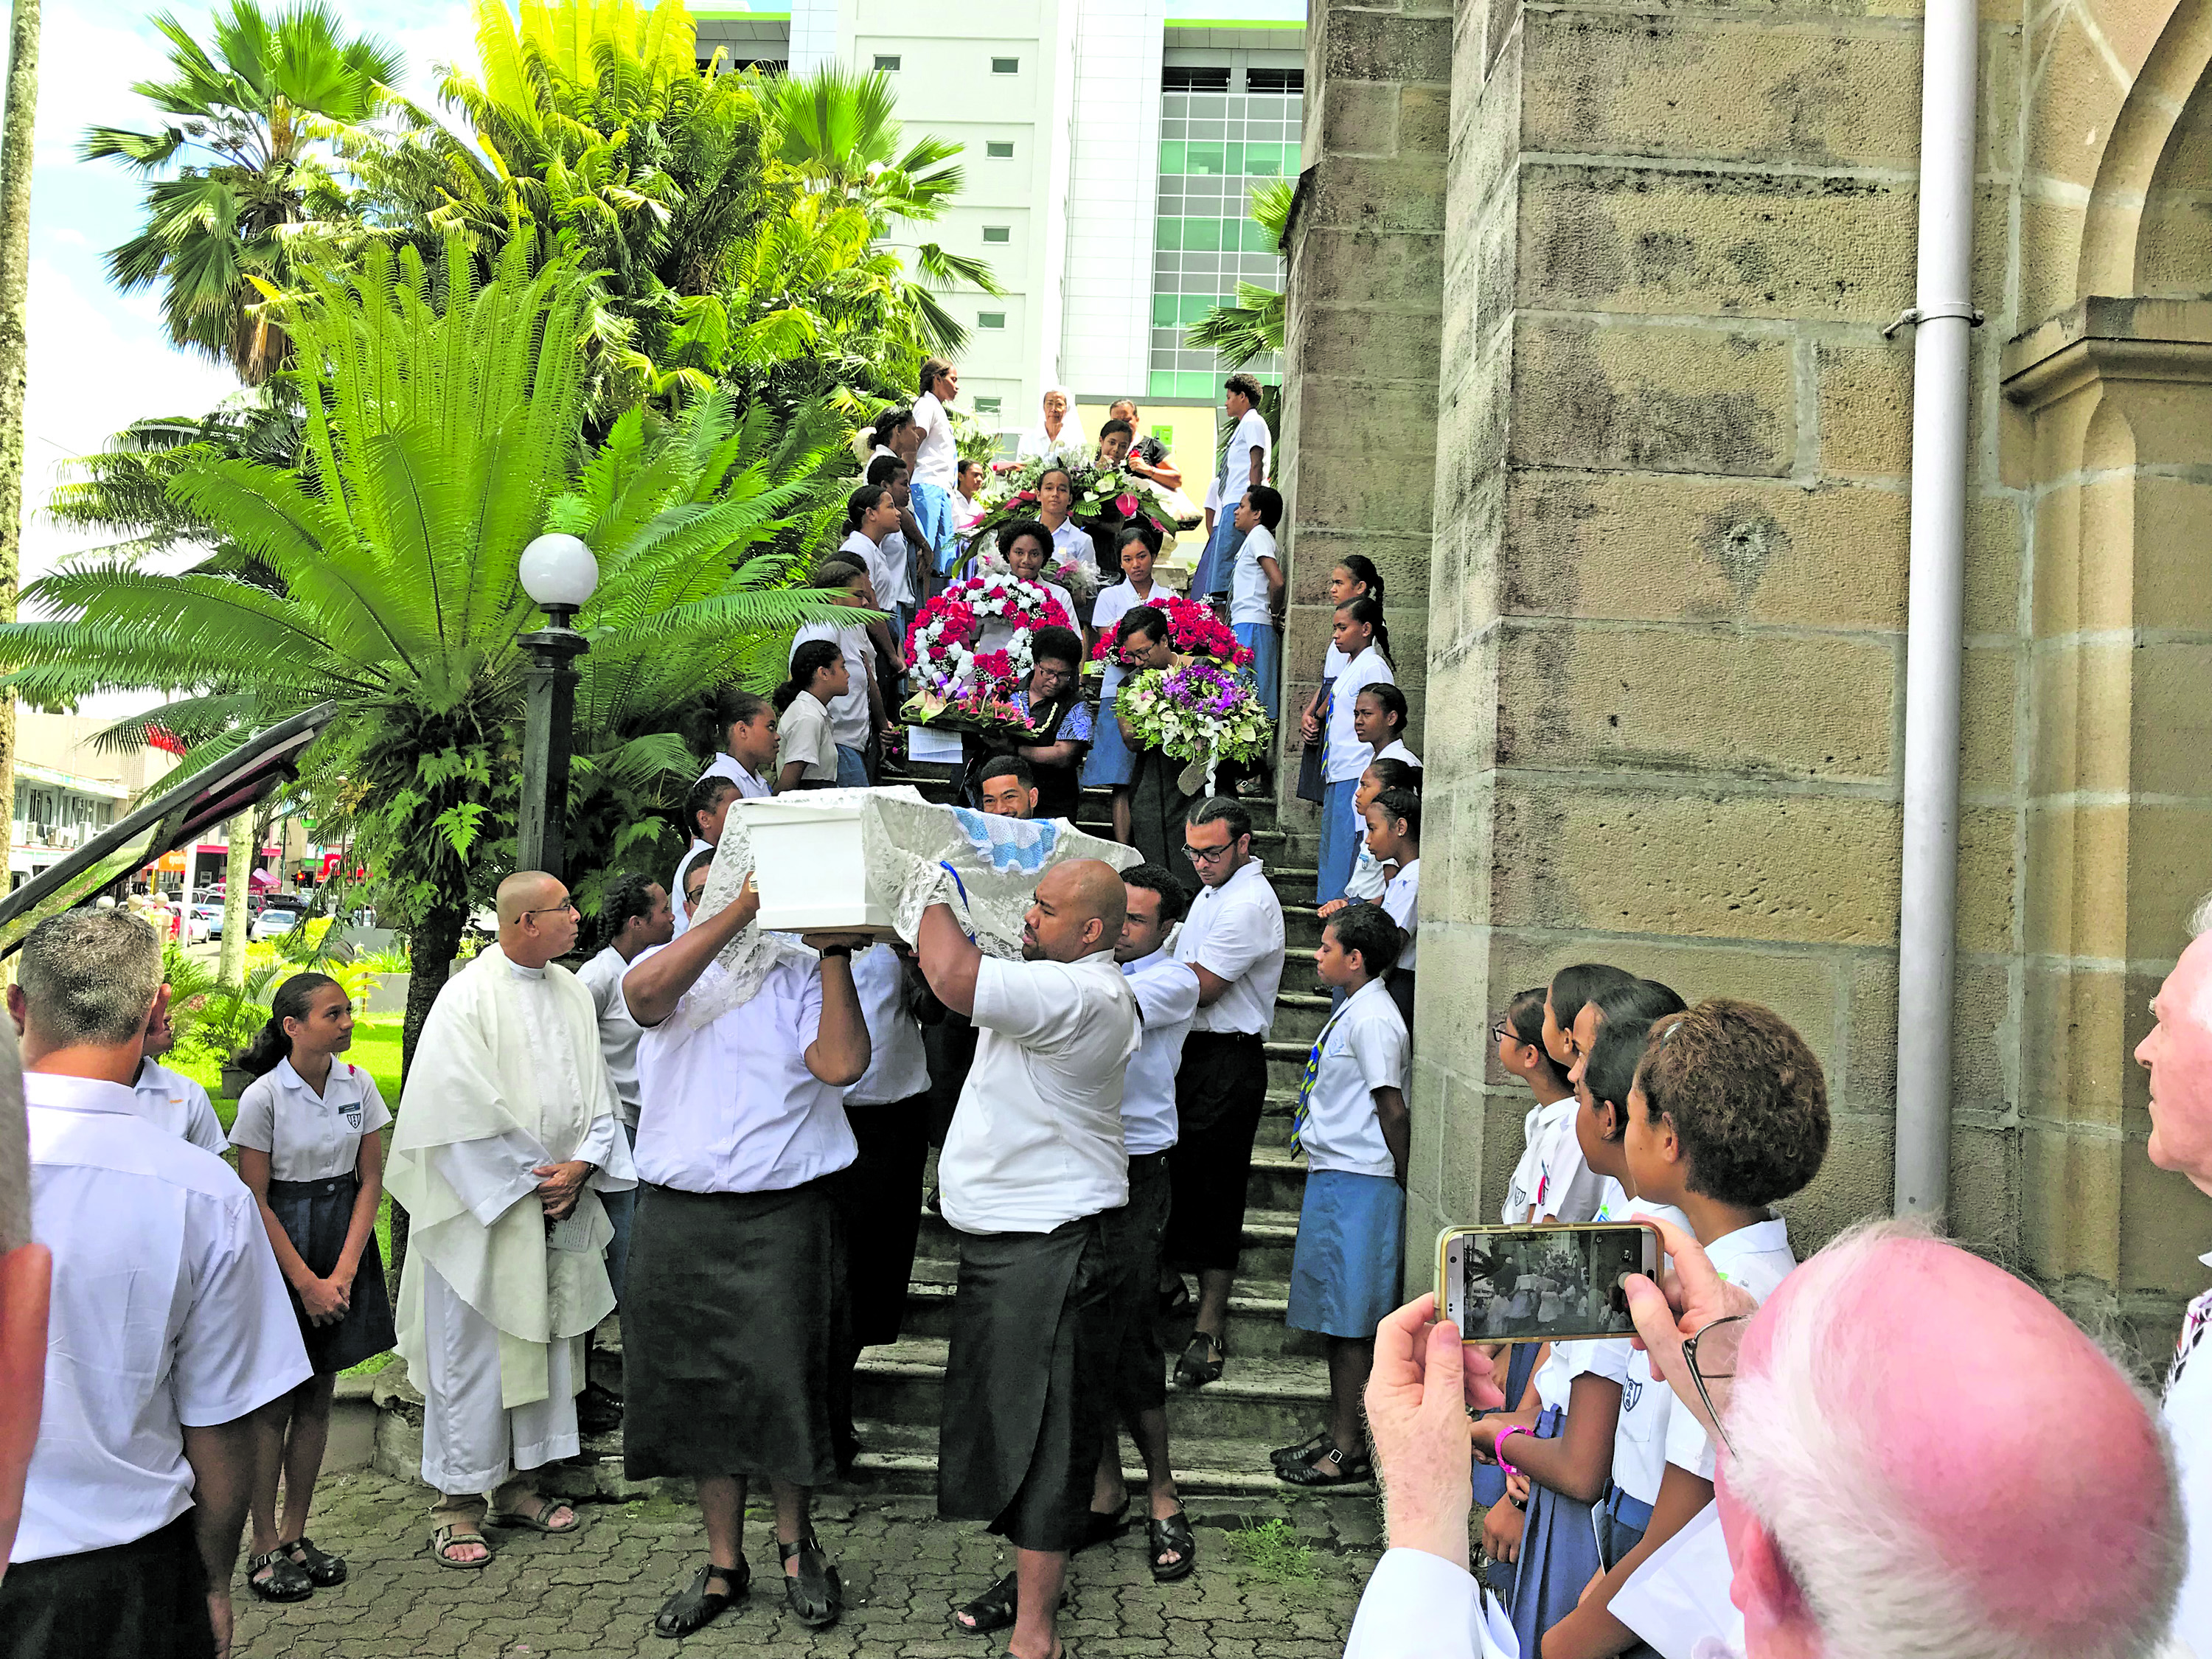 Pall-bearers carry the coffin of the late Sister Angela Cavey to the hearse before she was taken to the Old Suva Cemetery and laid to rest on March 6, 2018. Photo: Ashna Kumar